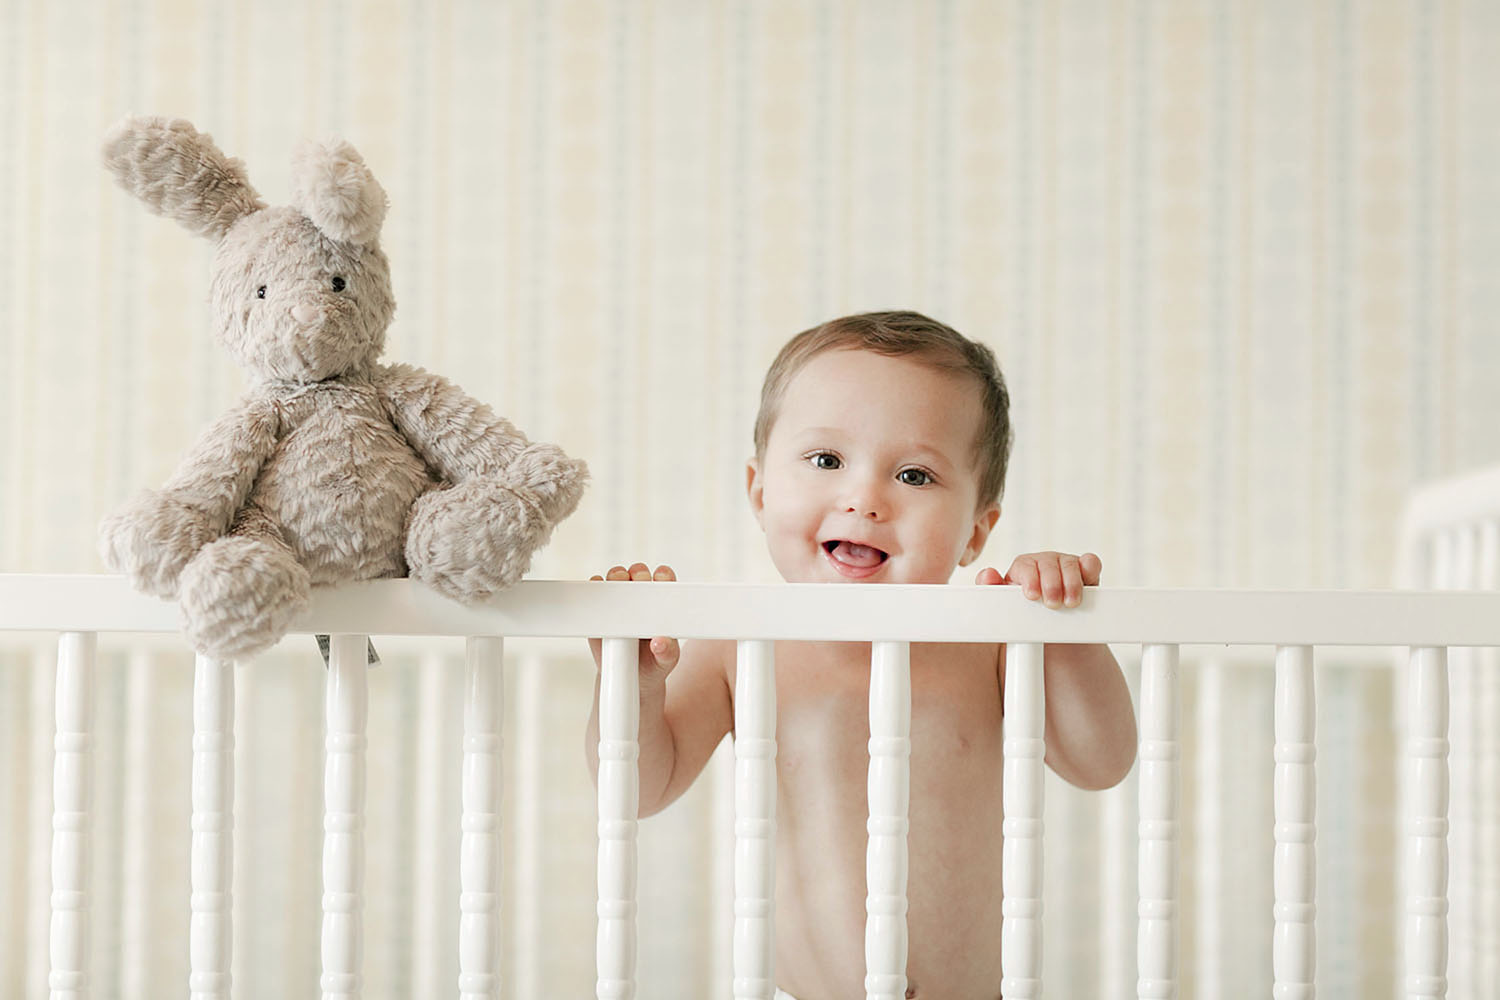 lifestyle-editorial-children-washington-dc-malek-naz-photography-contempo-kids-jellycat-fuddlewuddle.jpg